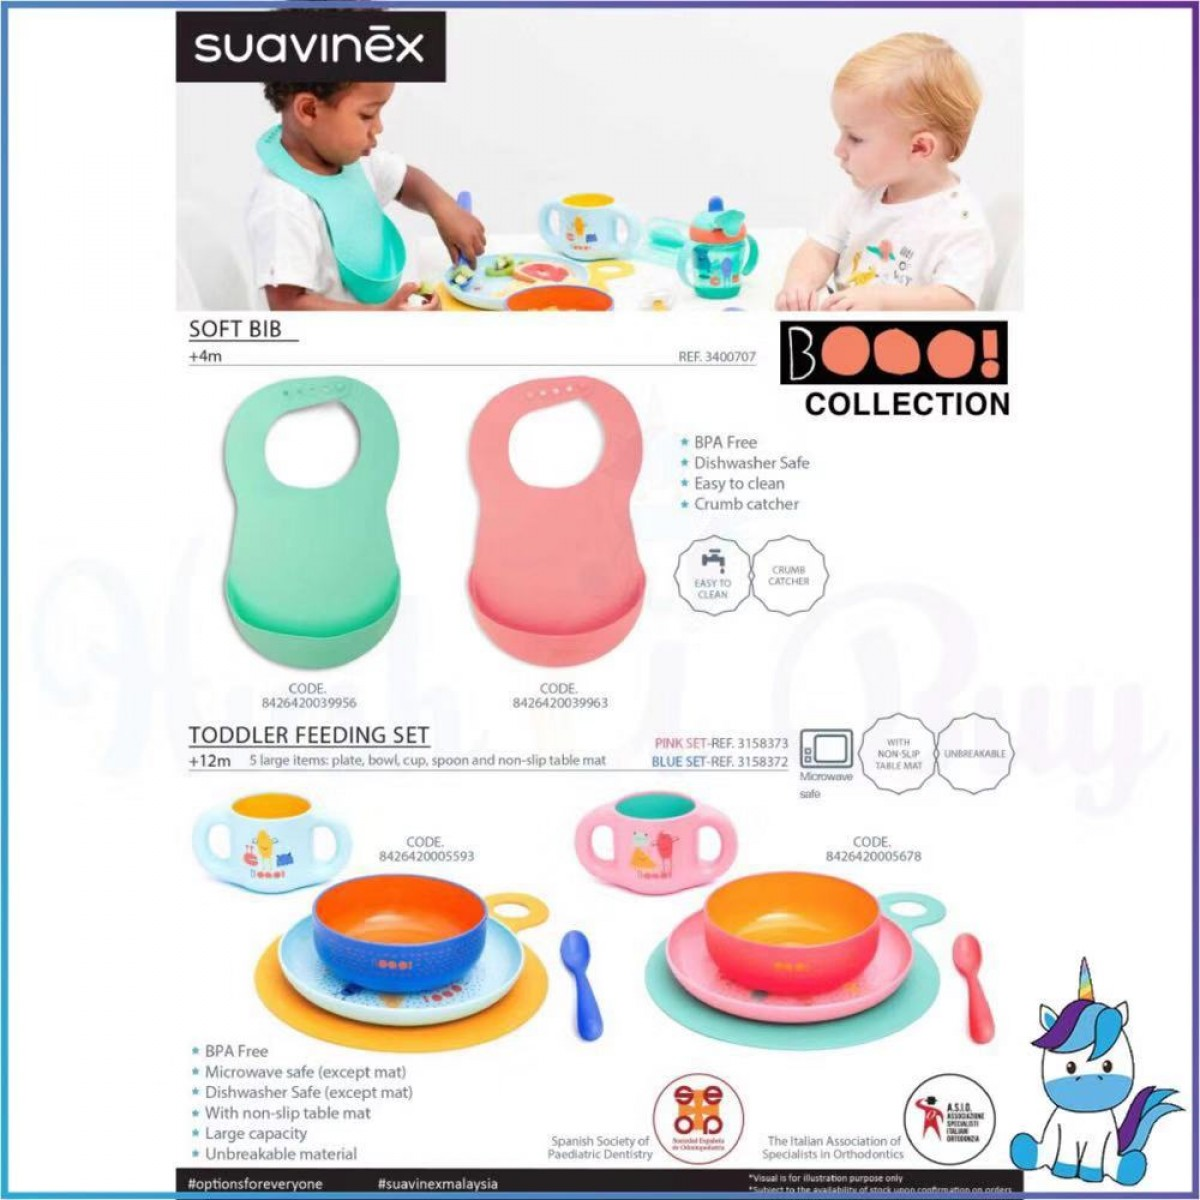 Suavinex Boo Collection BPA Free Waterproof Baby Apron Soft Bib